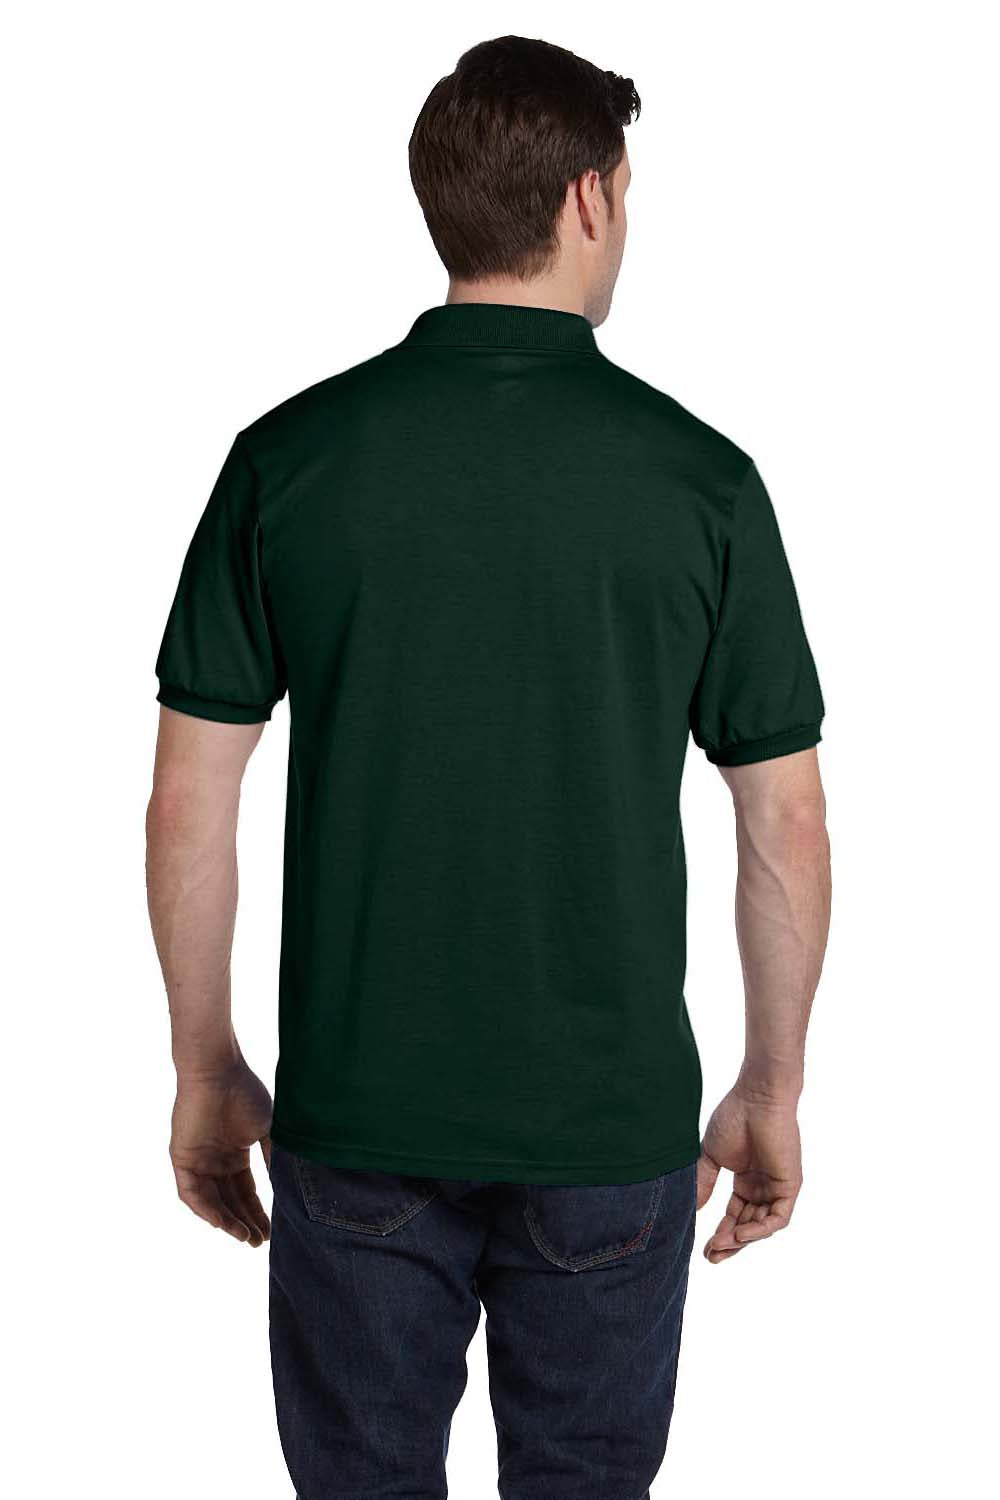 Hanes 054 Mens EcoSmart Short Sleeve Polo Shirt Forest Green Back